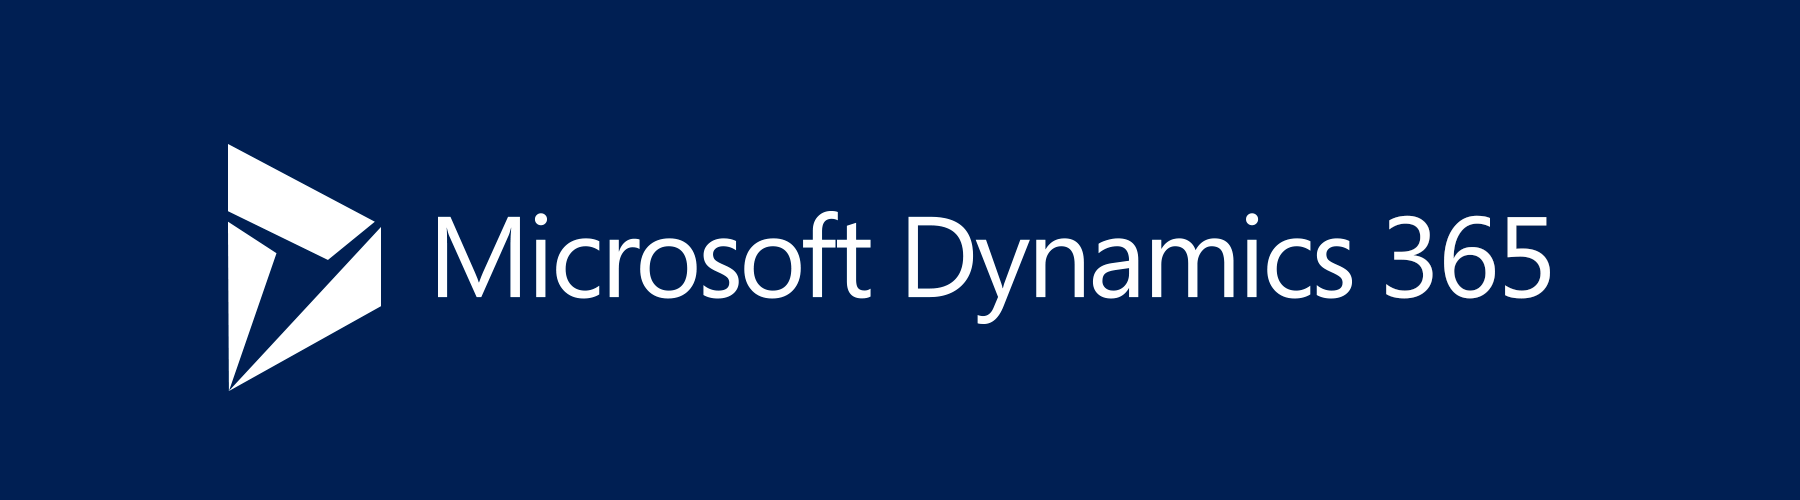 Copy of Microsoft Dynamics 365